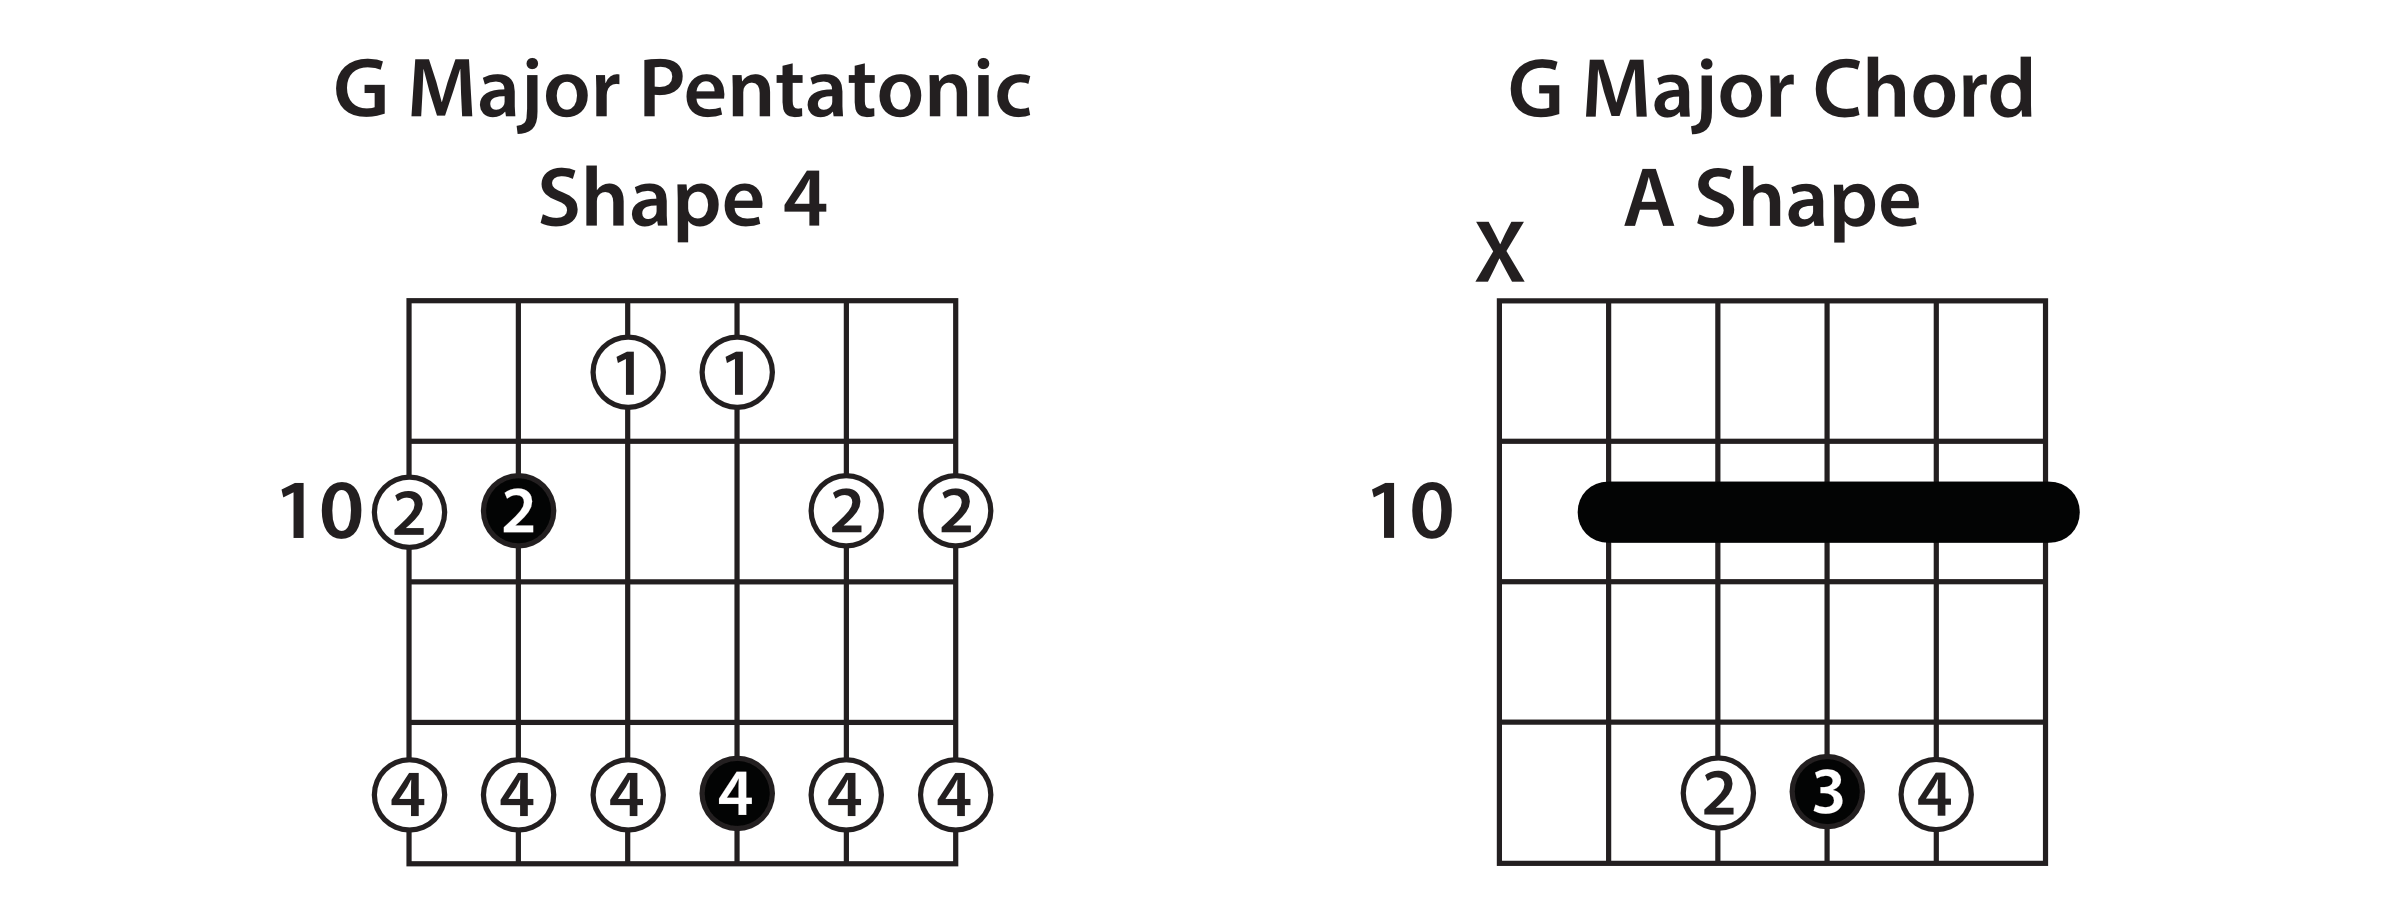 Major Pentatonic Shape 4